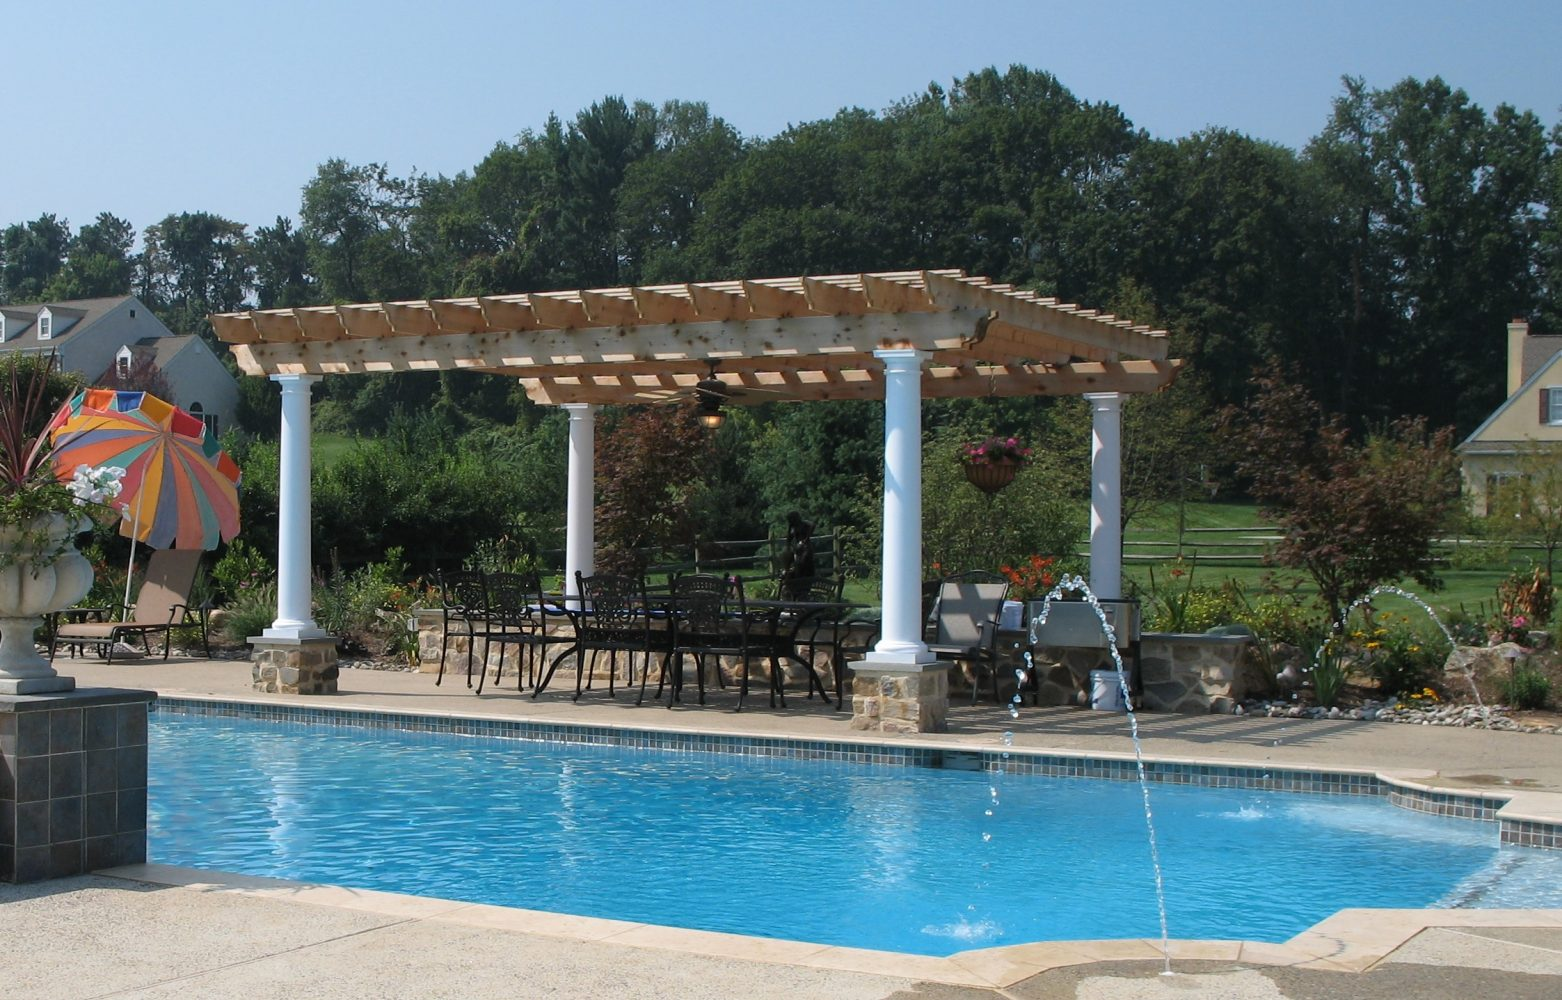 pergola und pool pictures - photo #45